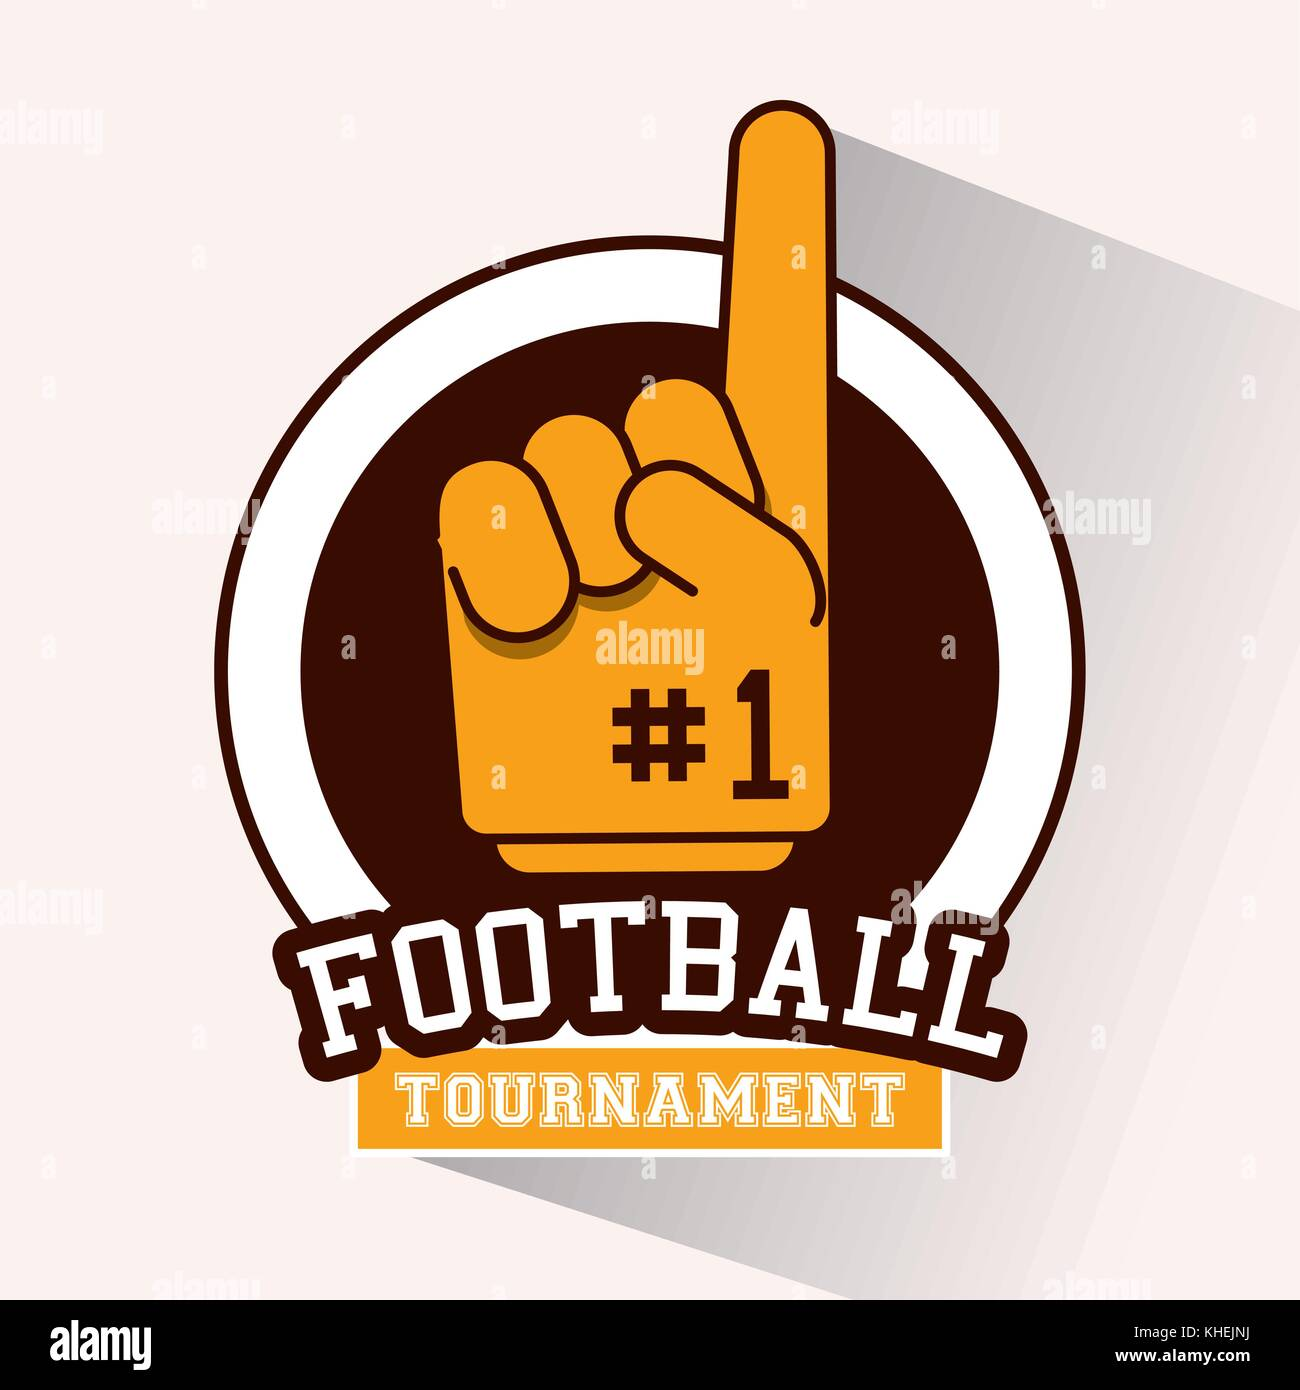 Tournoi de football américain Photo Stock